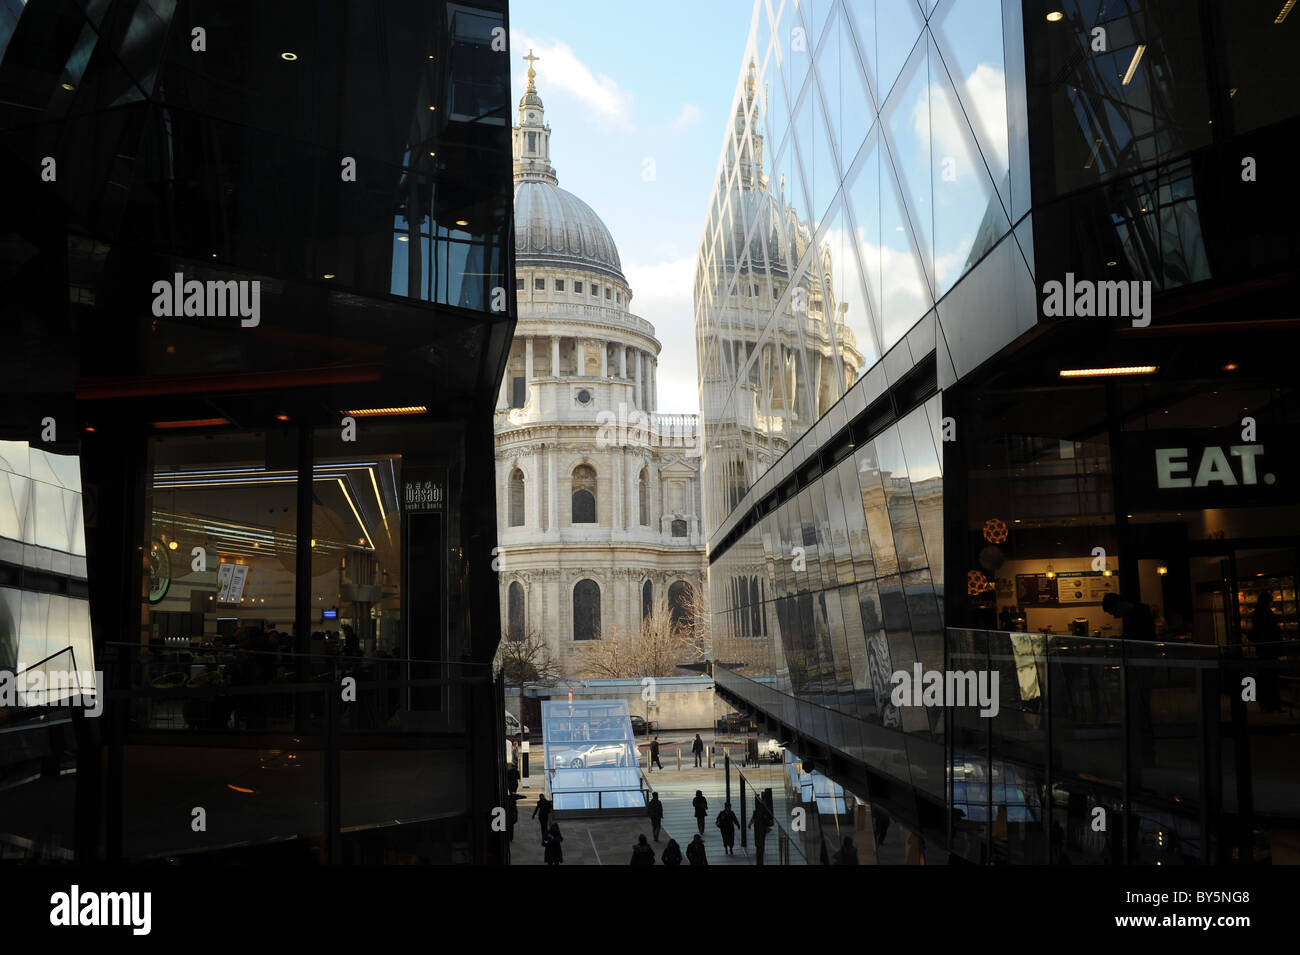 One New Change Shopping Centre, London, England Stock Photo